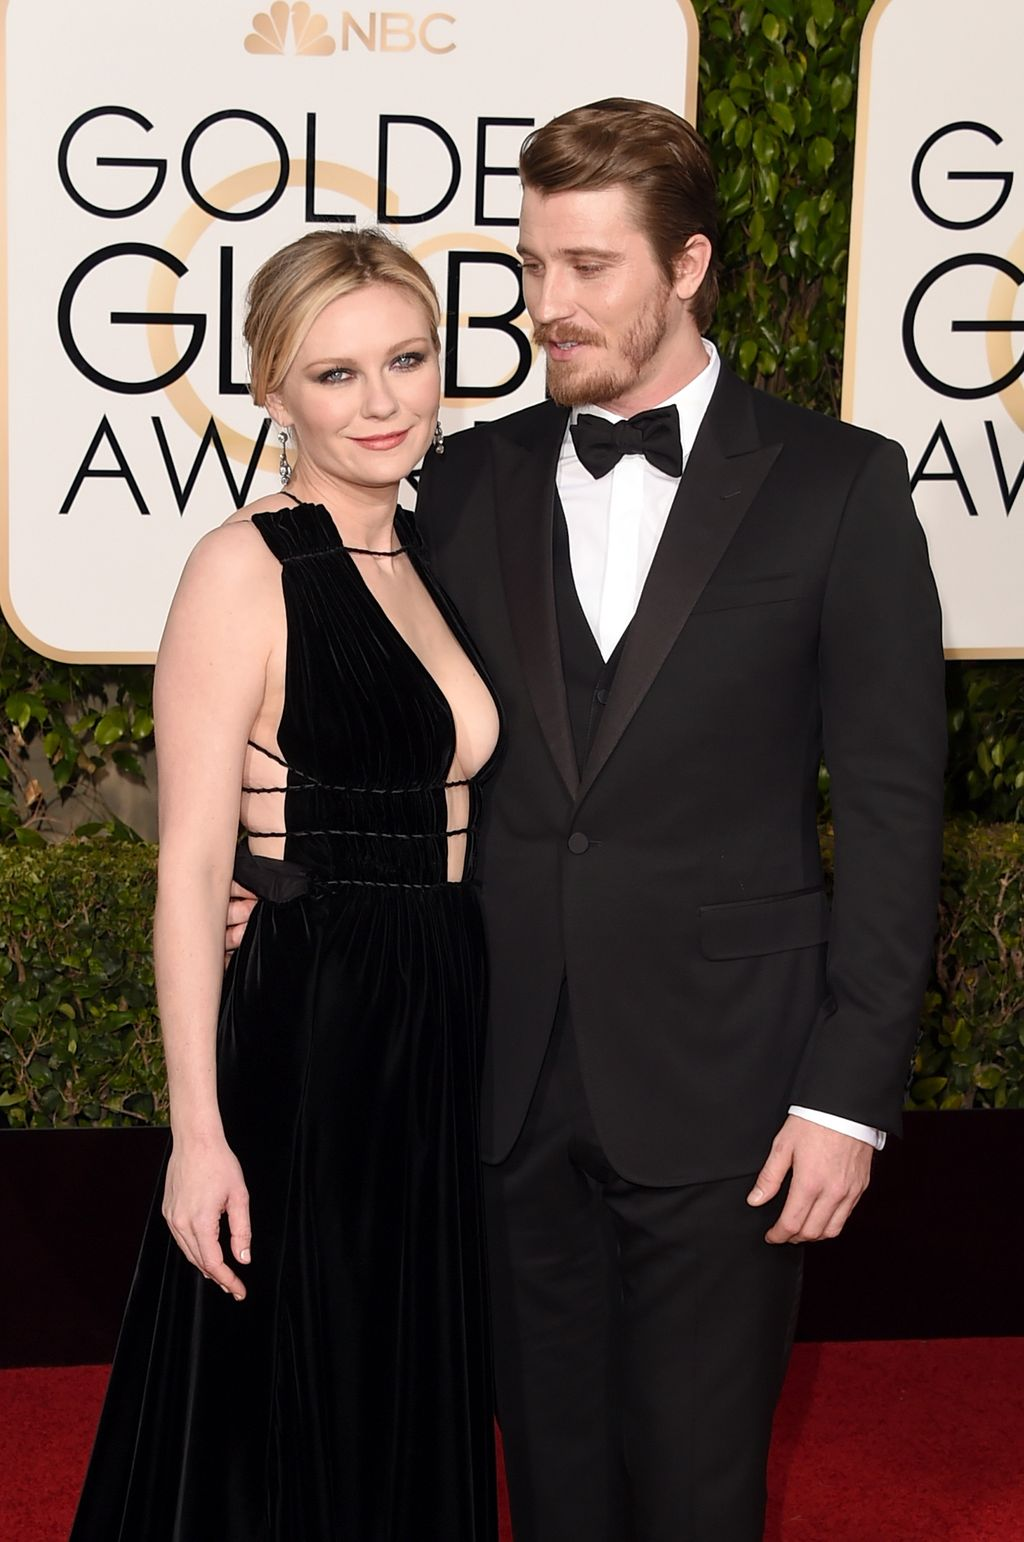 BEVERLY HILLS, CA - JANUARY 10:  Actors Kirsten Dunst (L) and Garrett Hedlund attend the 73rd Annual Golden Globe Awards held at the Beverly Hilton Hotel on January 10, 2016 in Beverly Hills, California.  (Photo by Jason Merritt/Getty Images)